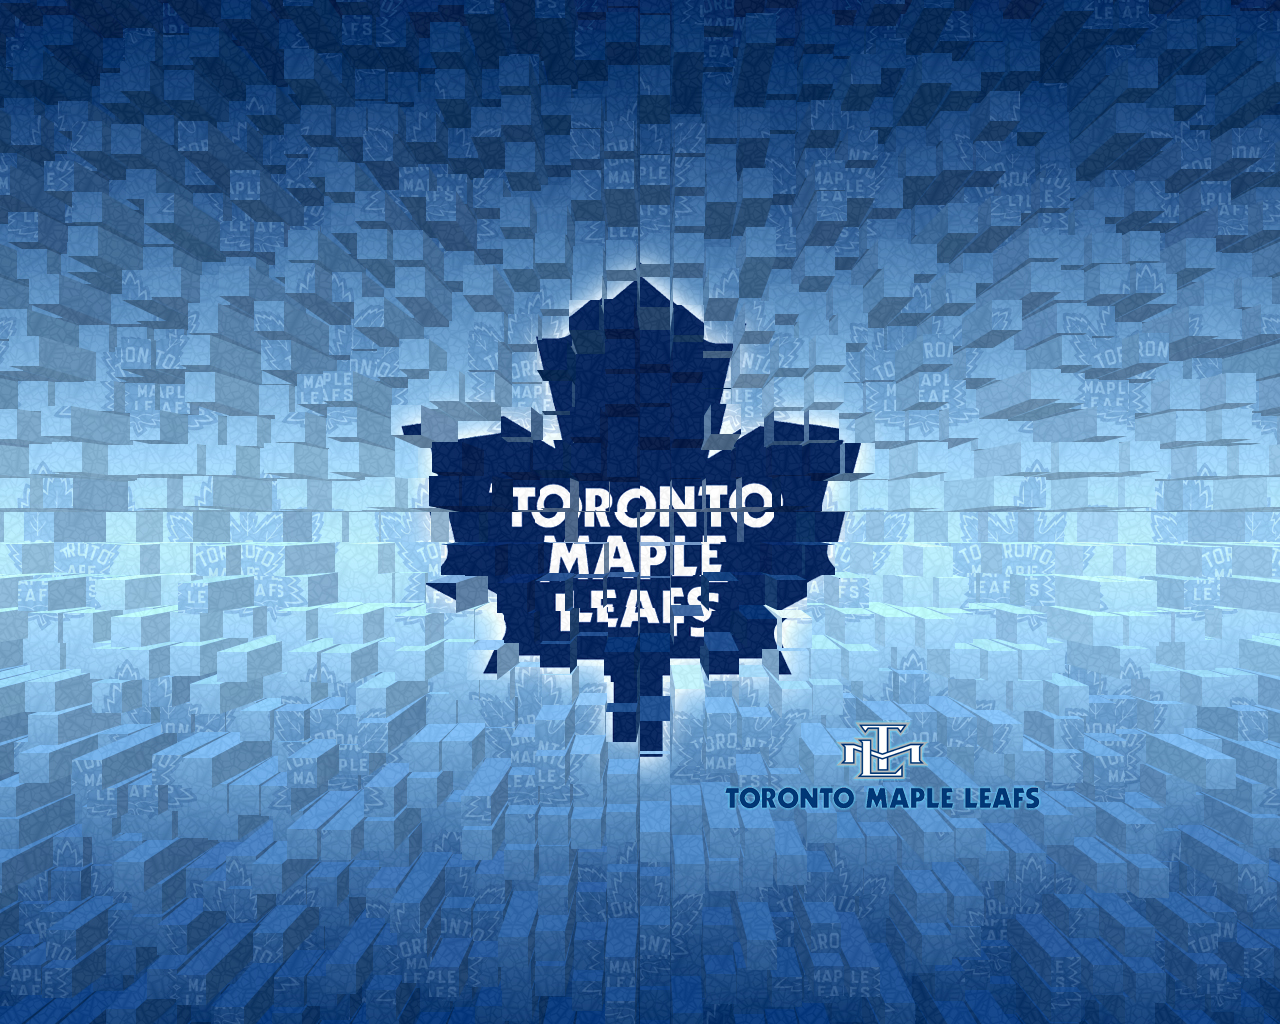 Free Download Toronto Maple Leafs Wallpapers Toronto Maple Leafs Background Page 1280x1024 For Your Desktop Mobile Tablet Explore 77 Toronto Maple Leafs Wallpaper Toronto Maple Leafs Wallpaper 2015 Toronto